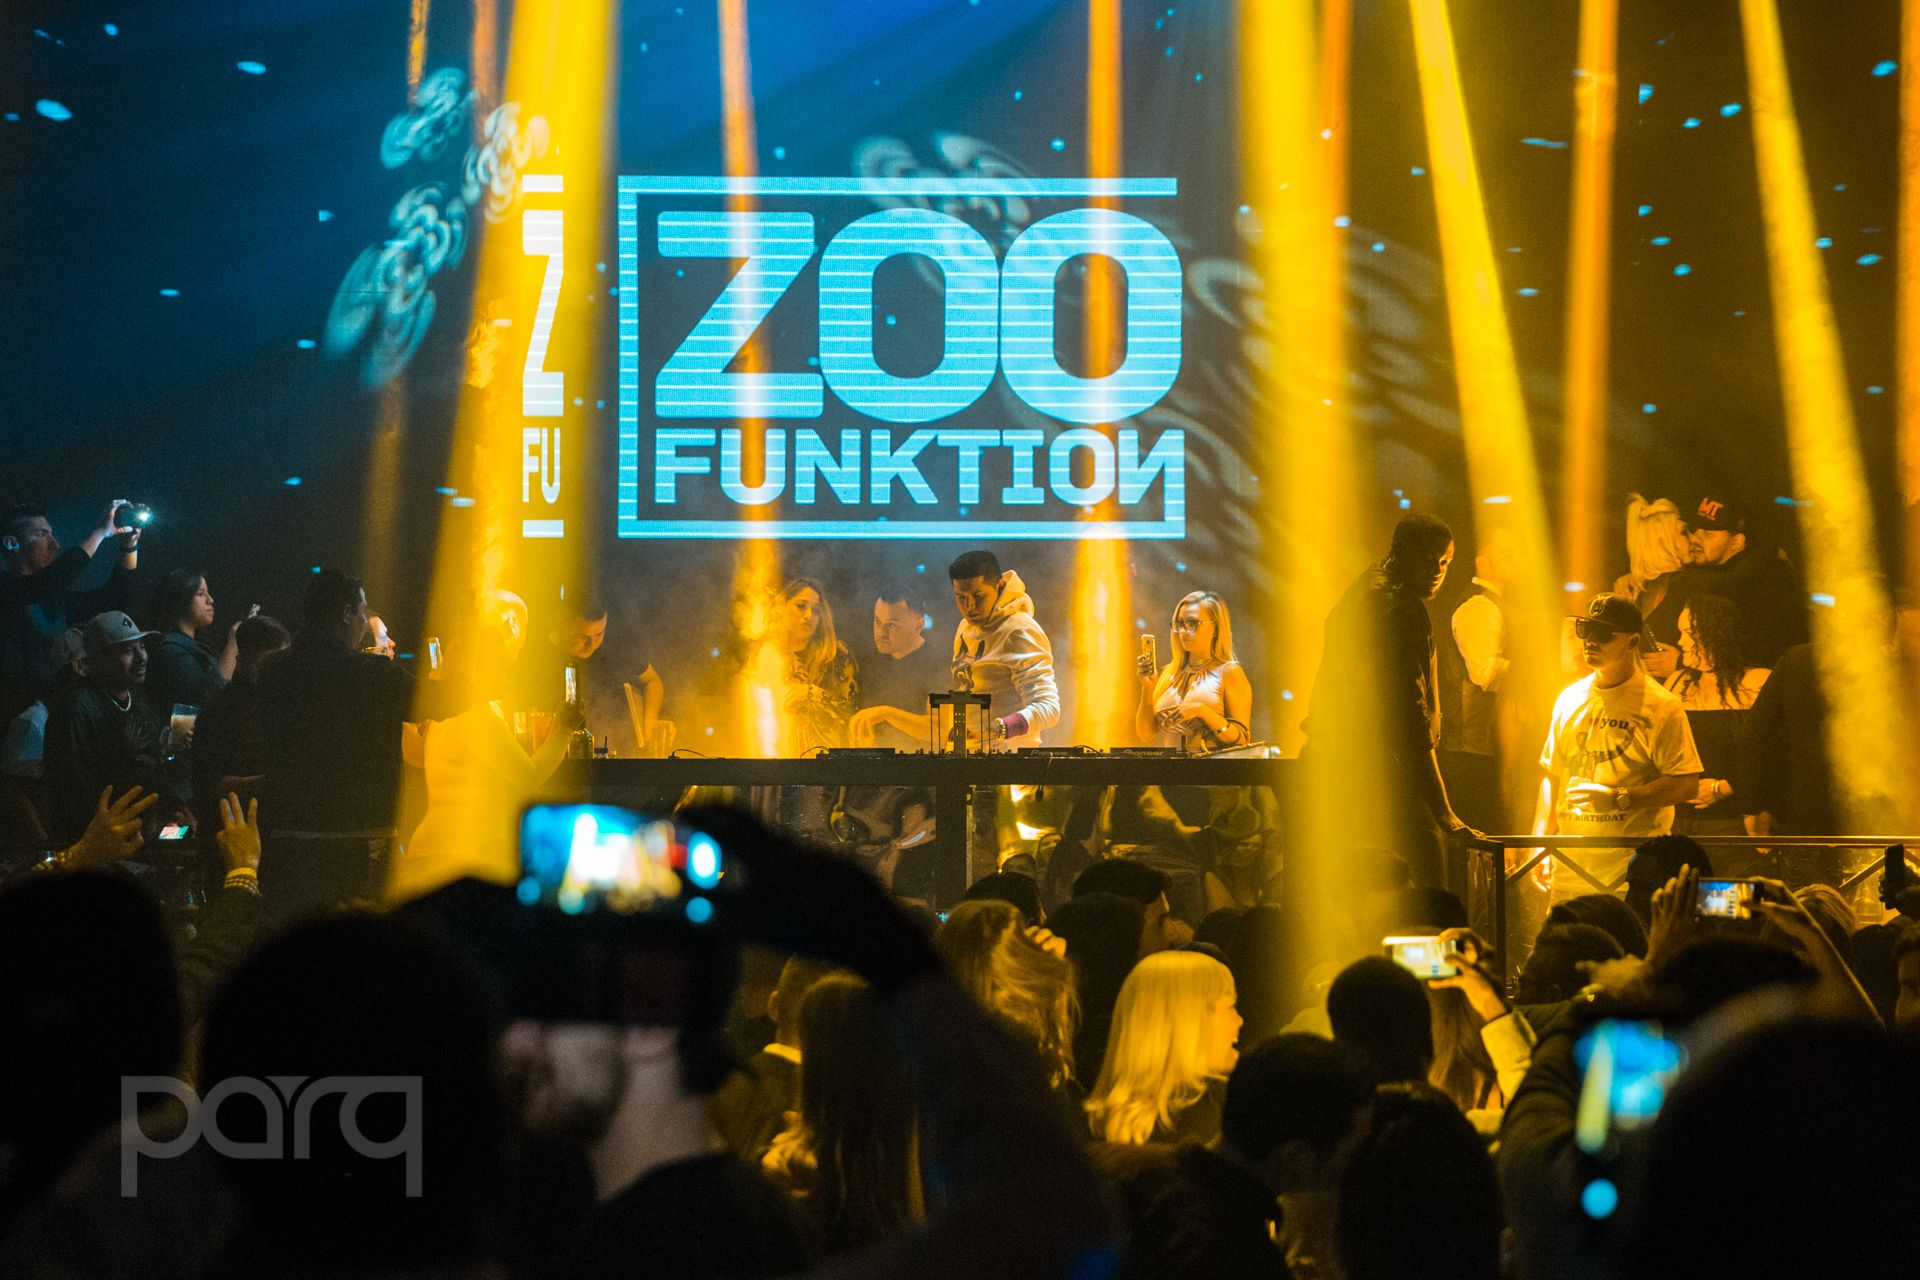 12.16.17 Parq - Zoo Funktion-1.jpg